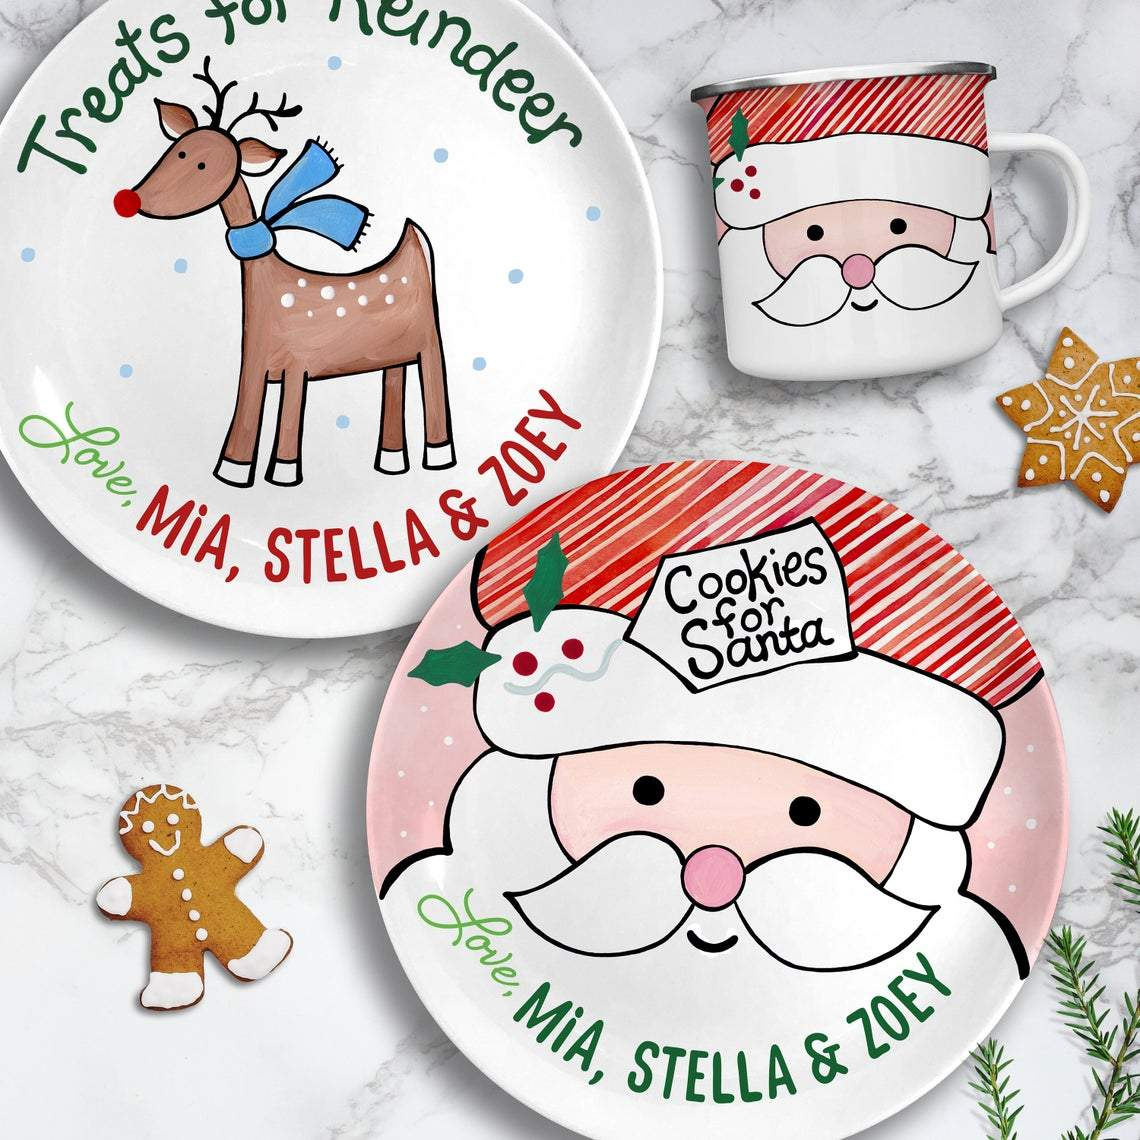 Cookies for Santa Plate Set - Kids Personalized Gifts (Style 1)-Gifts-Santa Plate + Reindeer-Pink-Jack and Jill Boutique